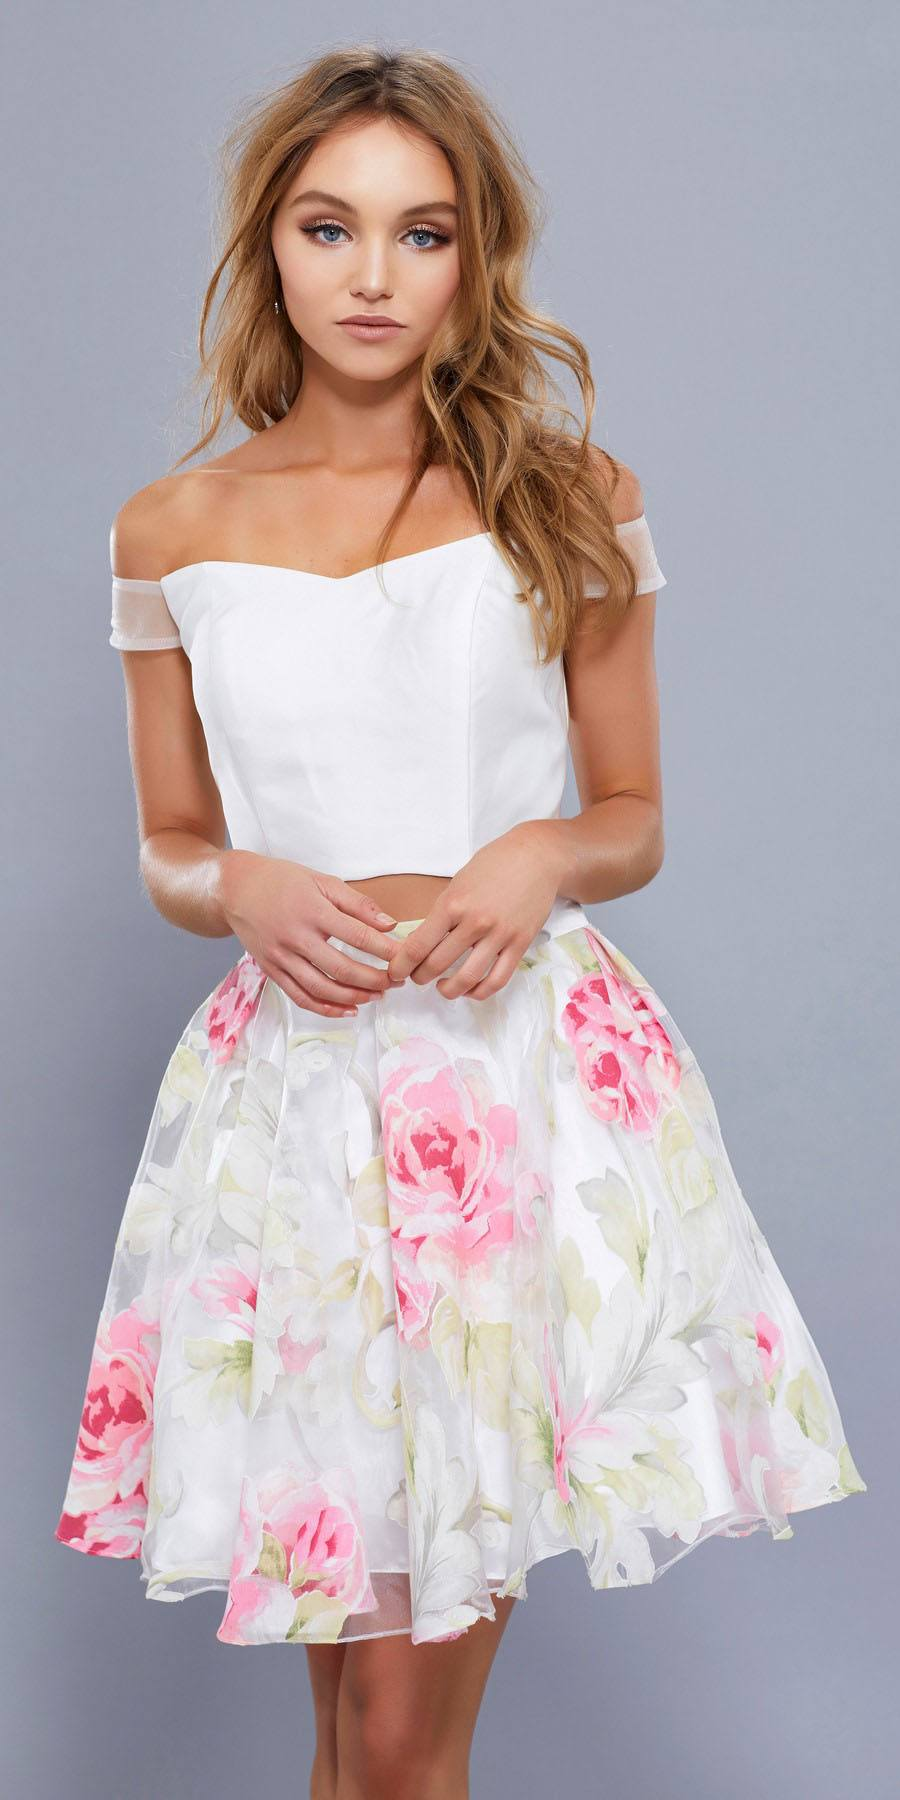 597b8a08633 Floral Print Skirt Off Shoulder Crop Top Two-Piece Homecoming Dress. Tap to  expand